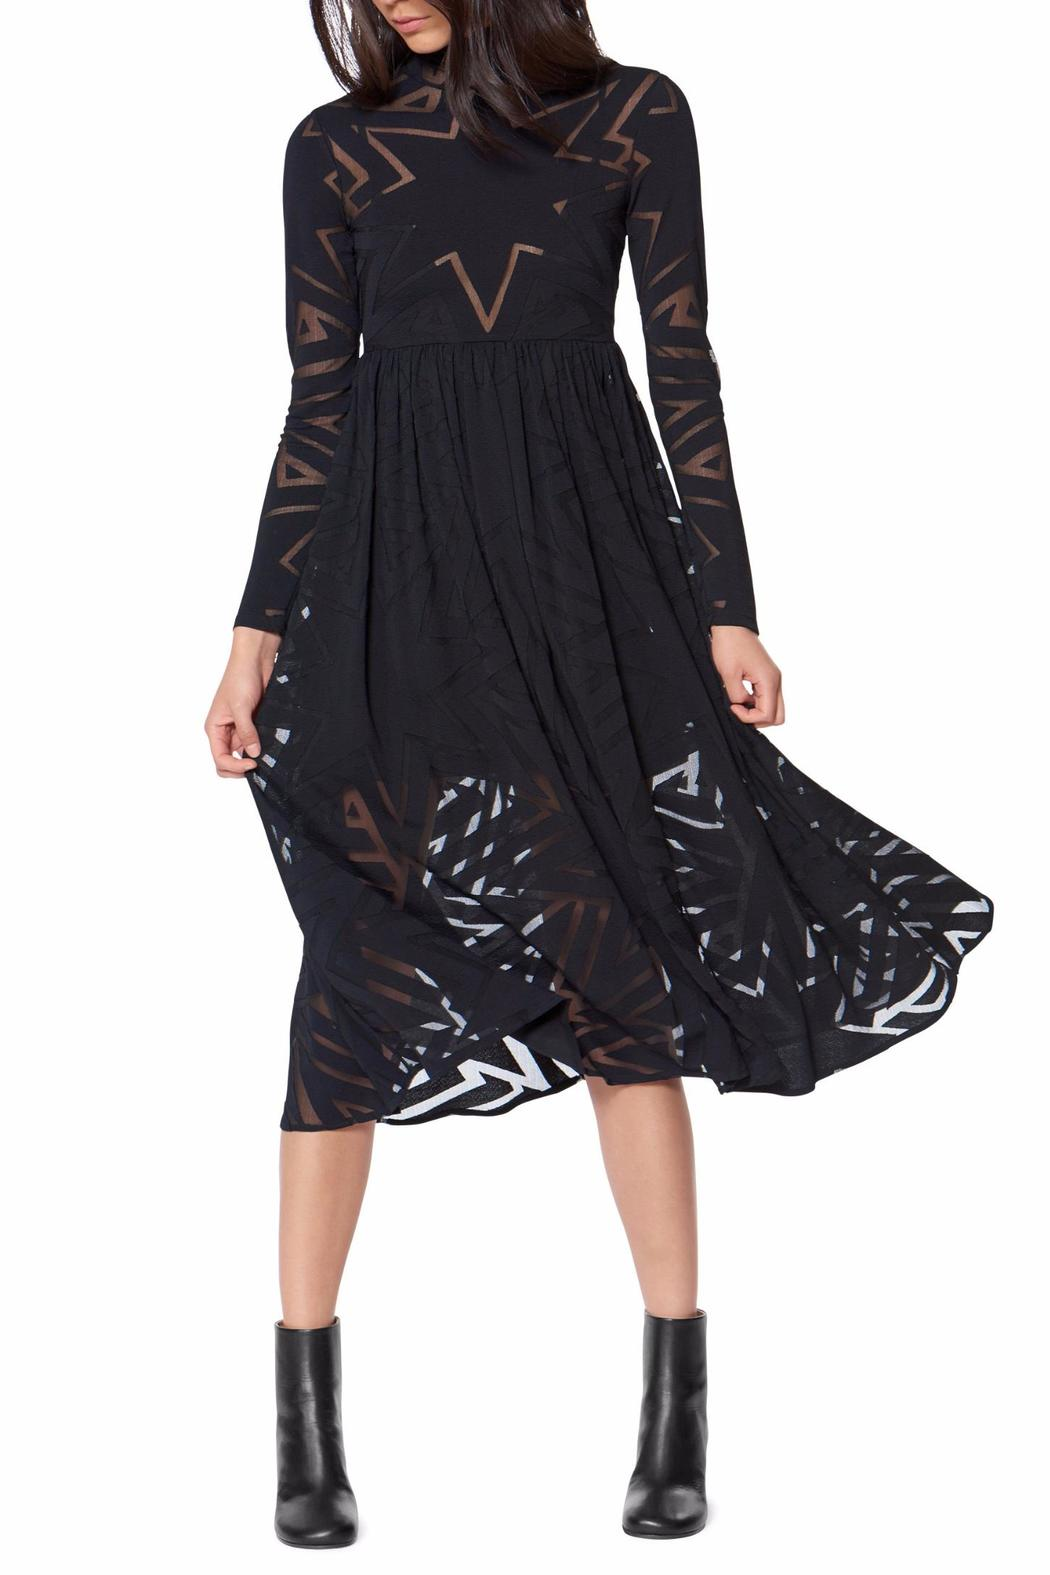 Mara Hoffman Burnout Midi Dress From New Jersey By Dressed By Lori